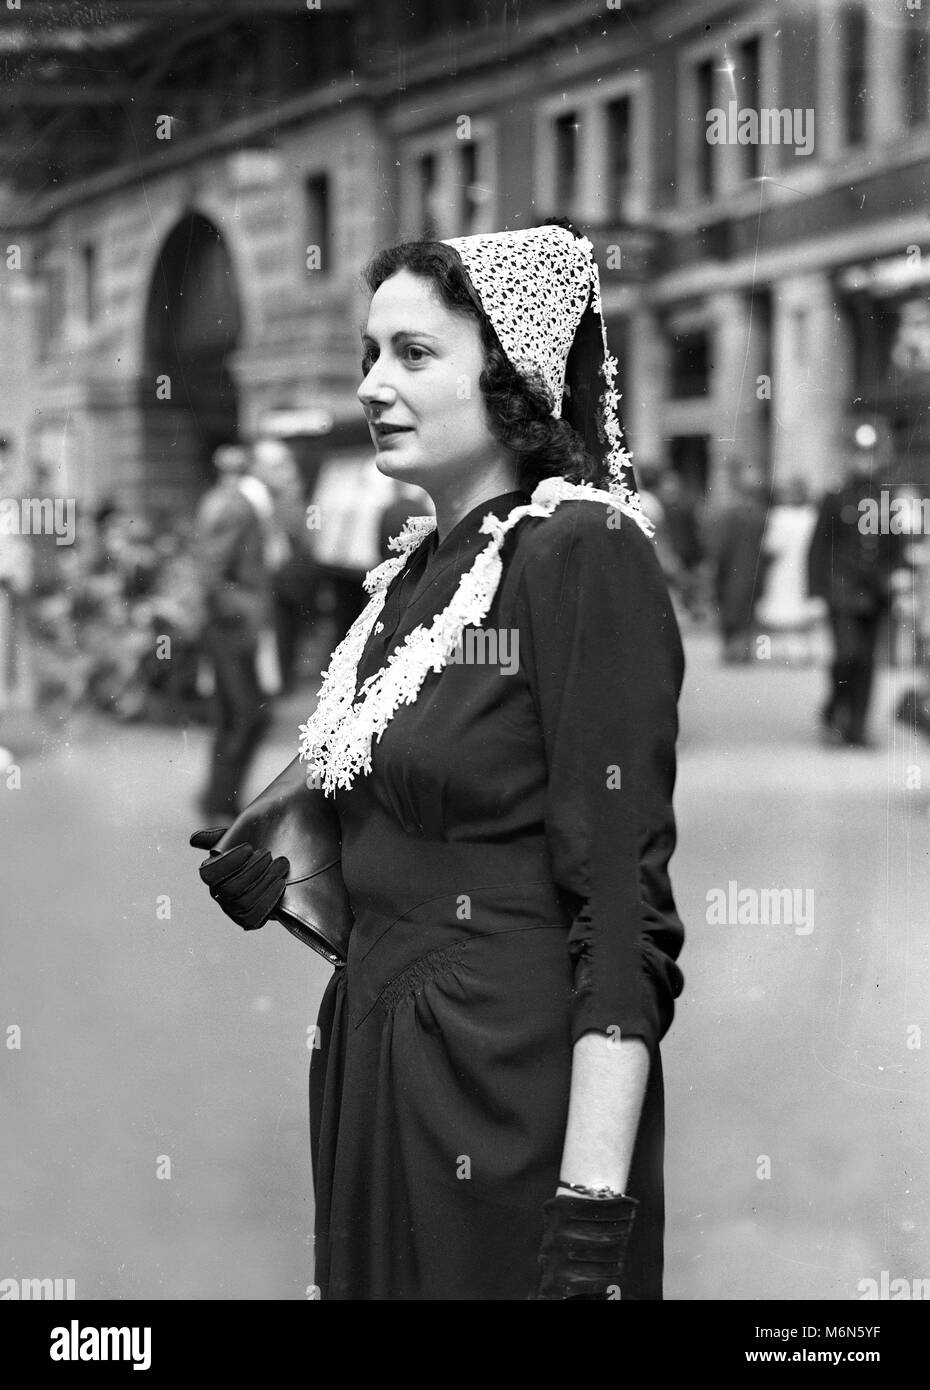 Royal Ascot 1948  Mrs L Stern dressed in style for a day at the races. - Stock Image